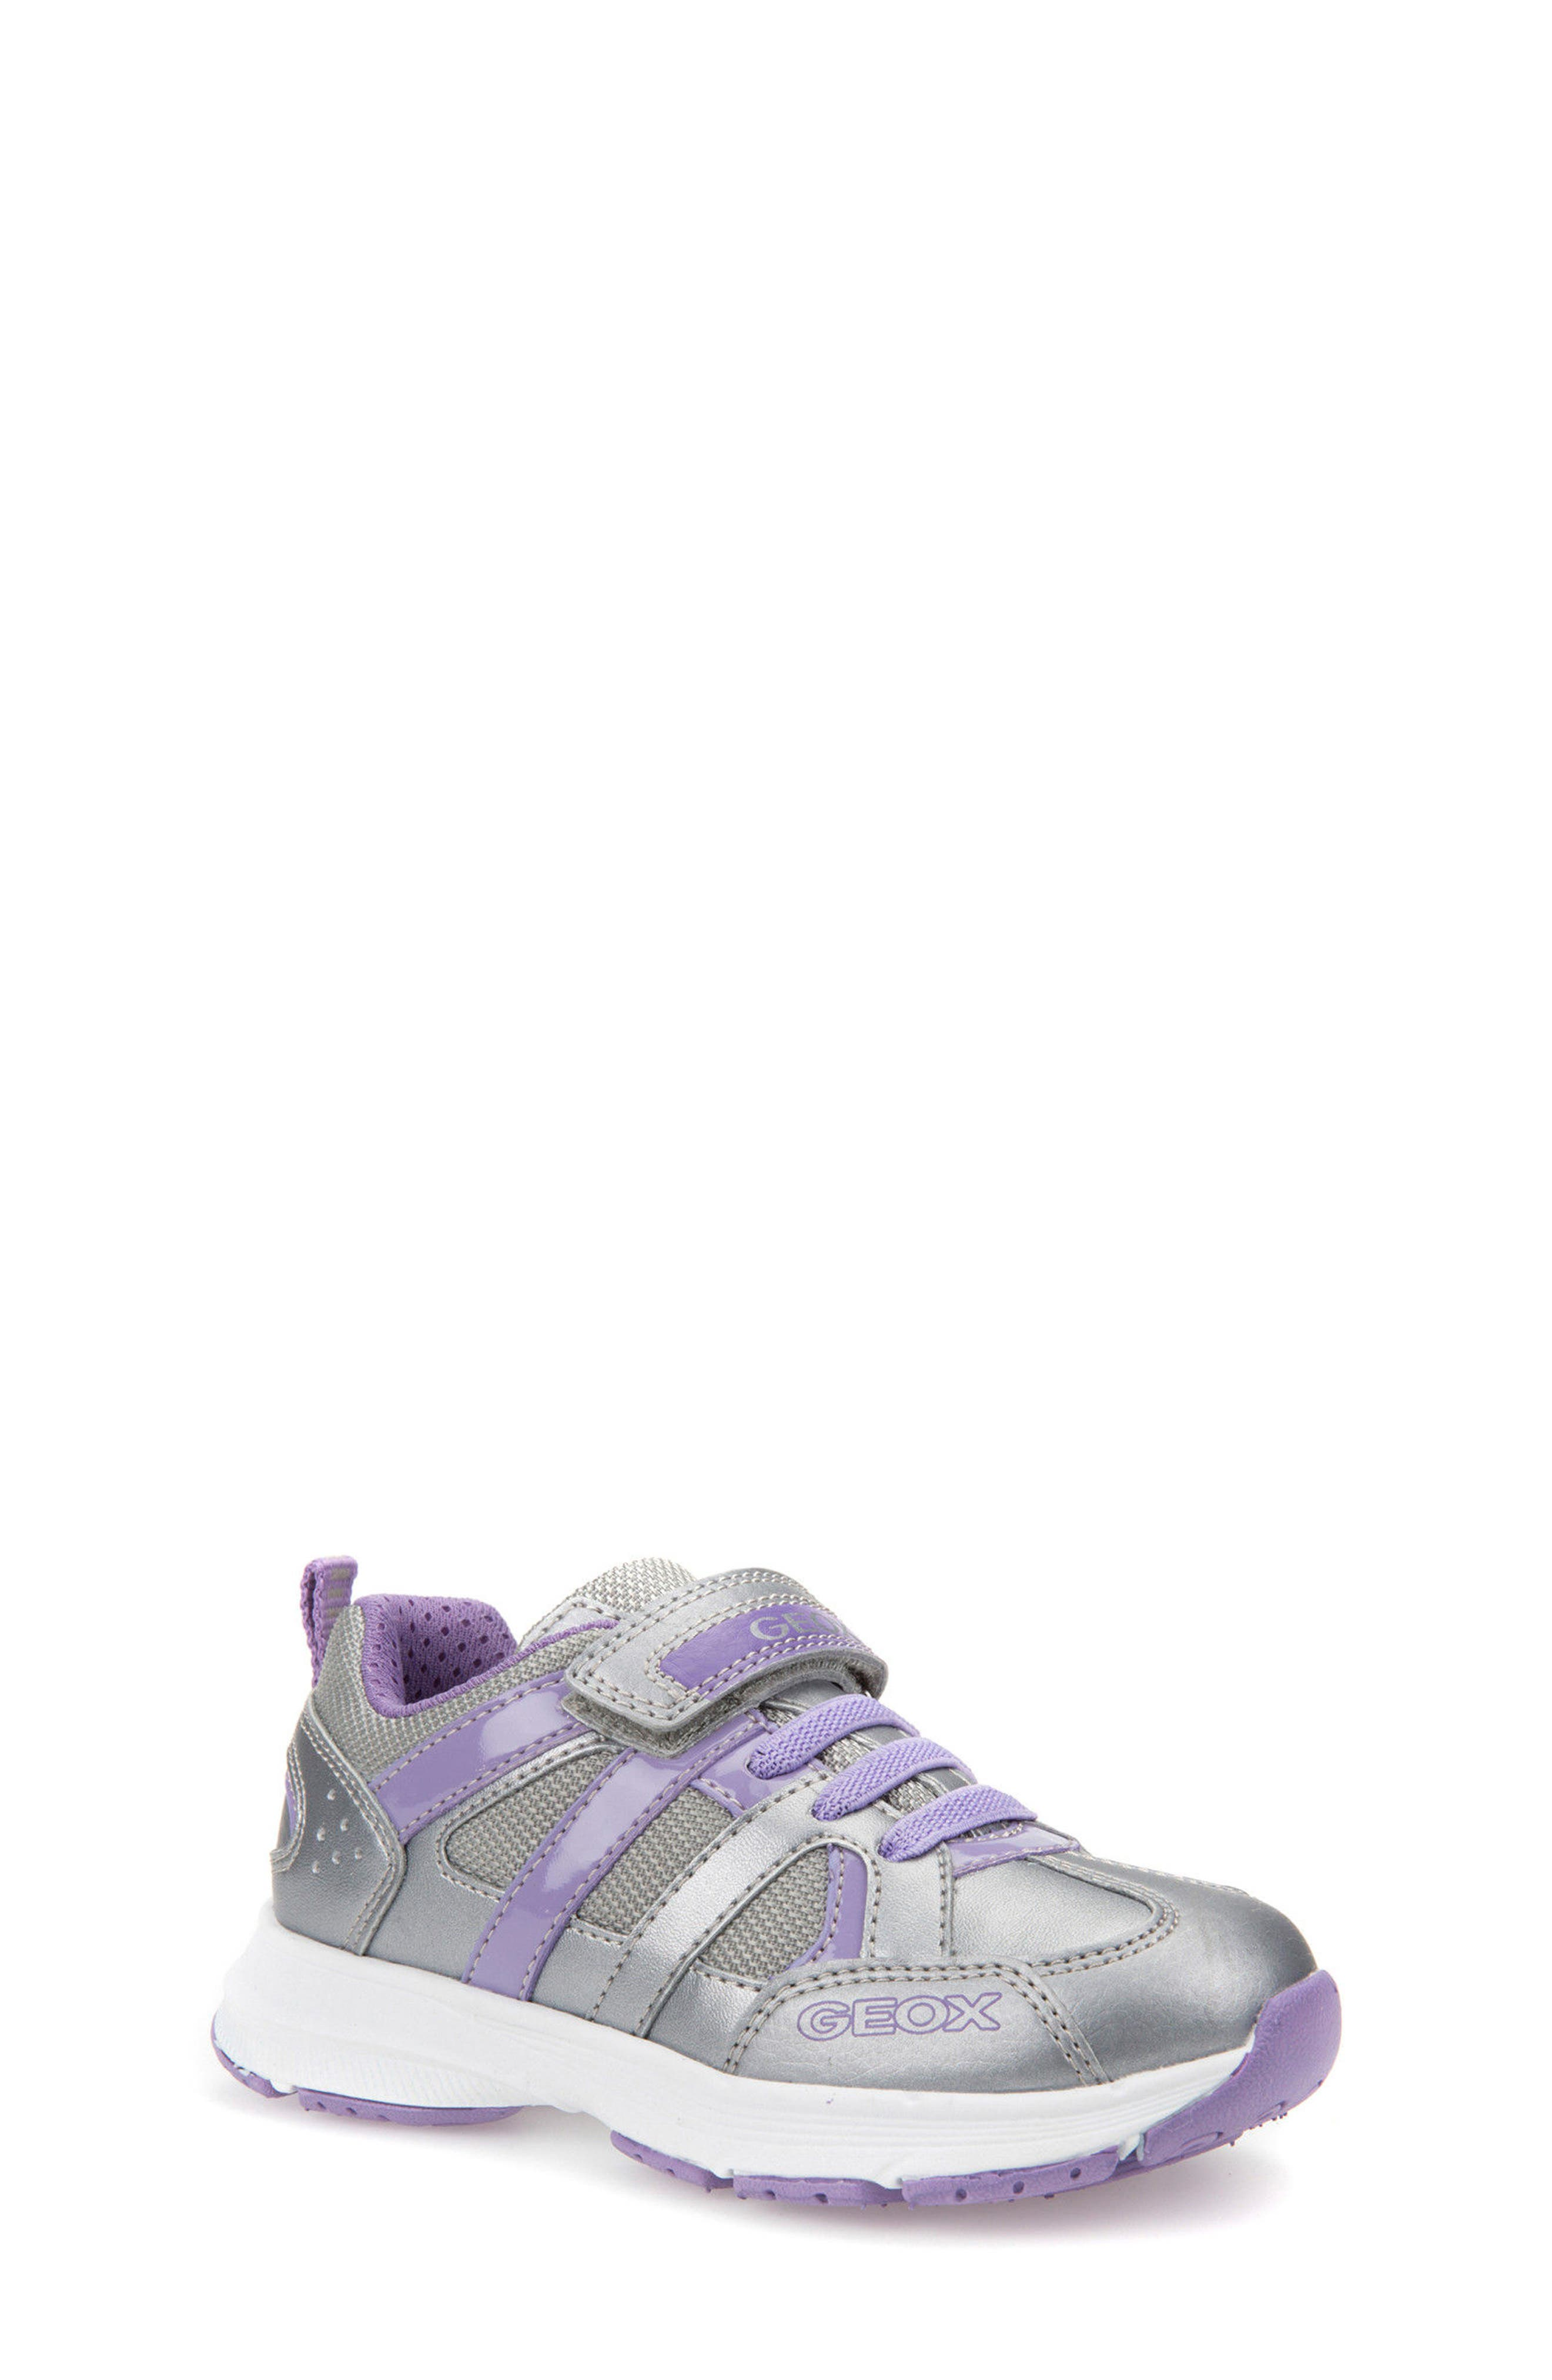 Top Fly Sneaker,                         Main,                         color, 040